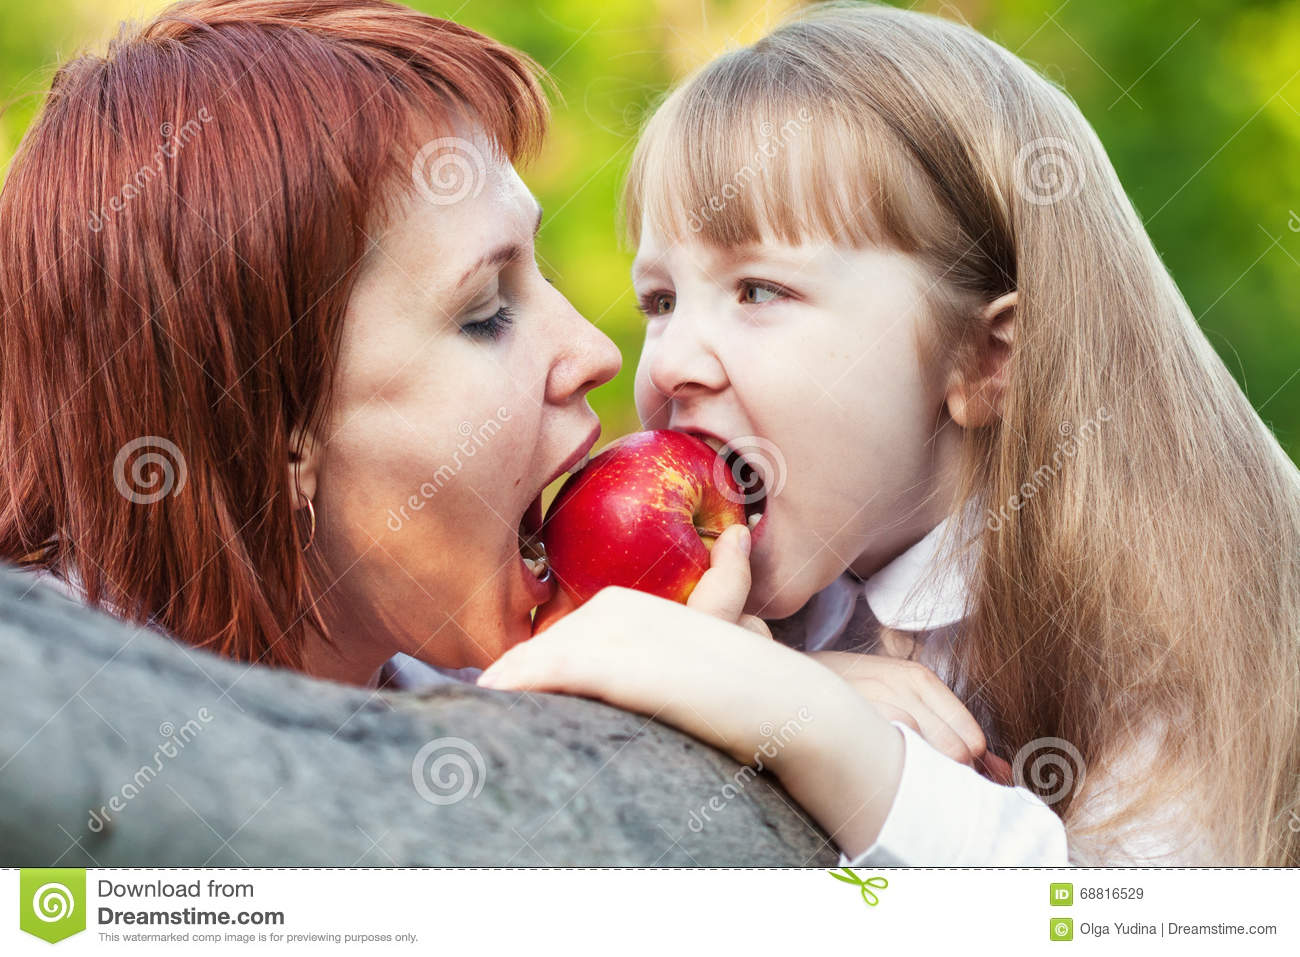 Download Do Not Eat My Tasty Apple. It`s Only Mine. Stock Image - Image of nature, caucasian: 68816529